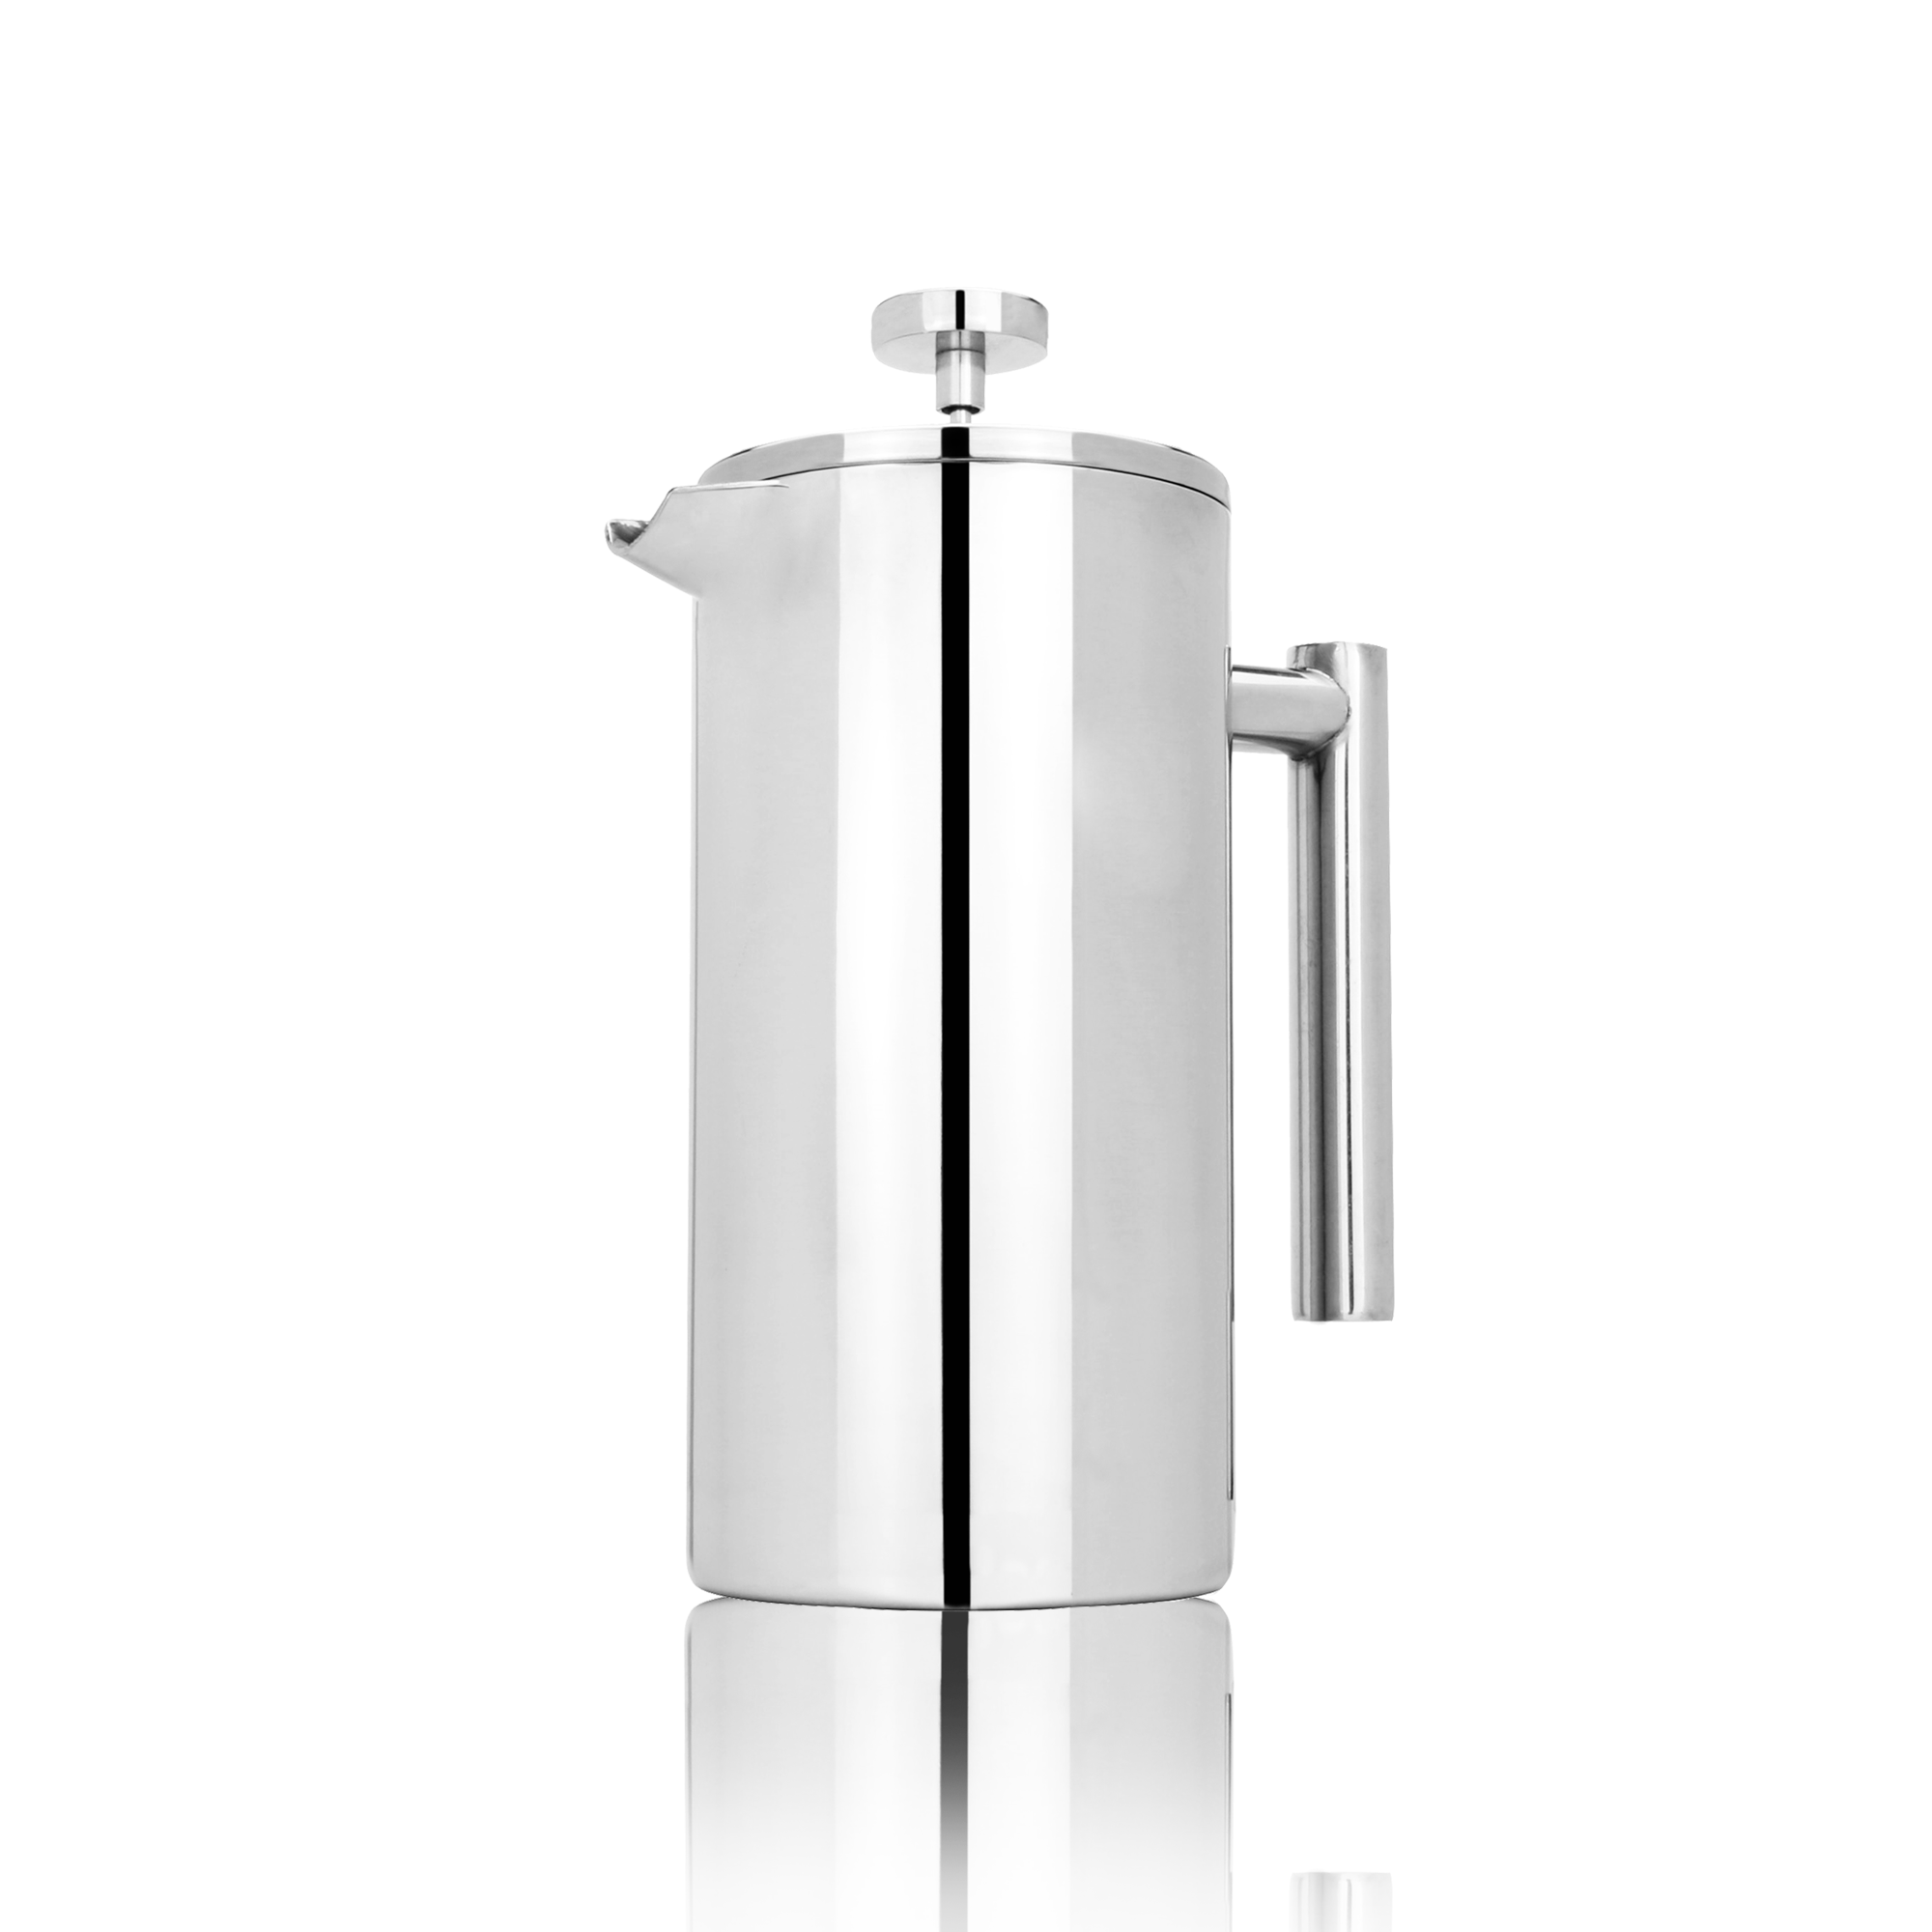 French-Press-Cafetiere-Steel-Coffee-Maker-FREE-Filters-amp-Spoons-M-amp-W miniatuur 3